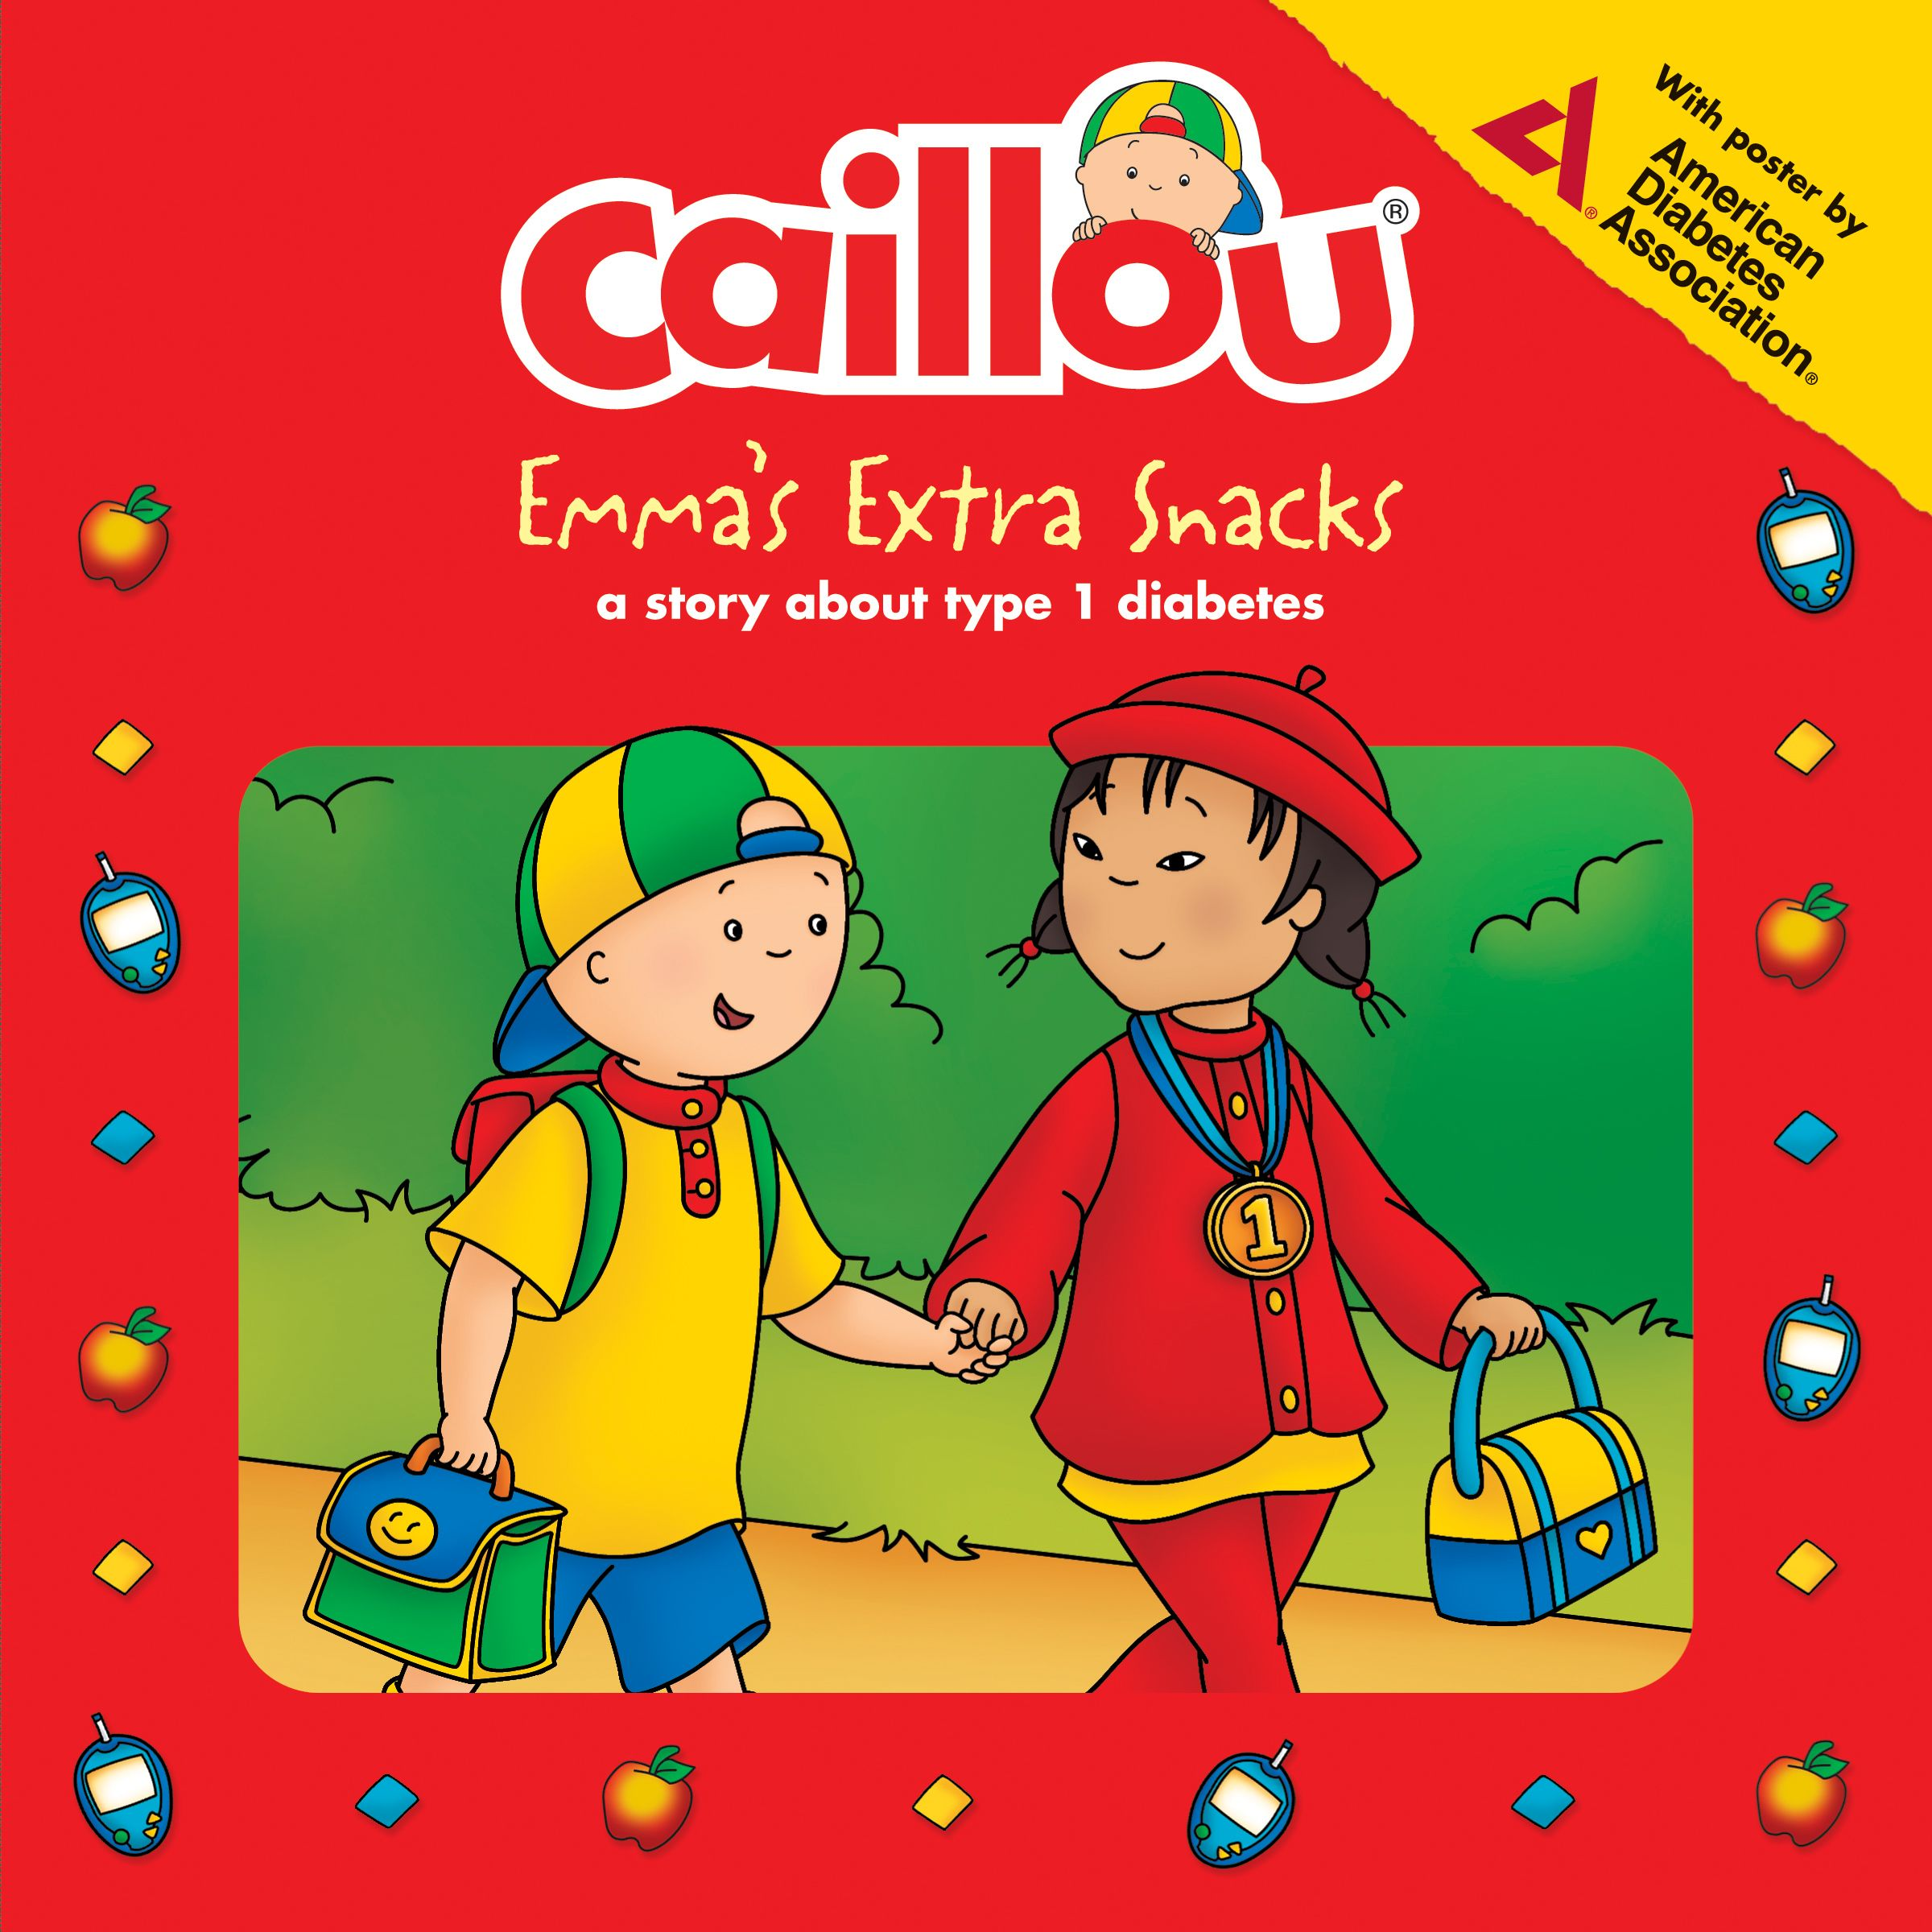 From The Best Selling Caillou Series Comes Emma S Extra